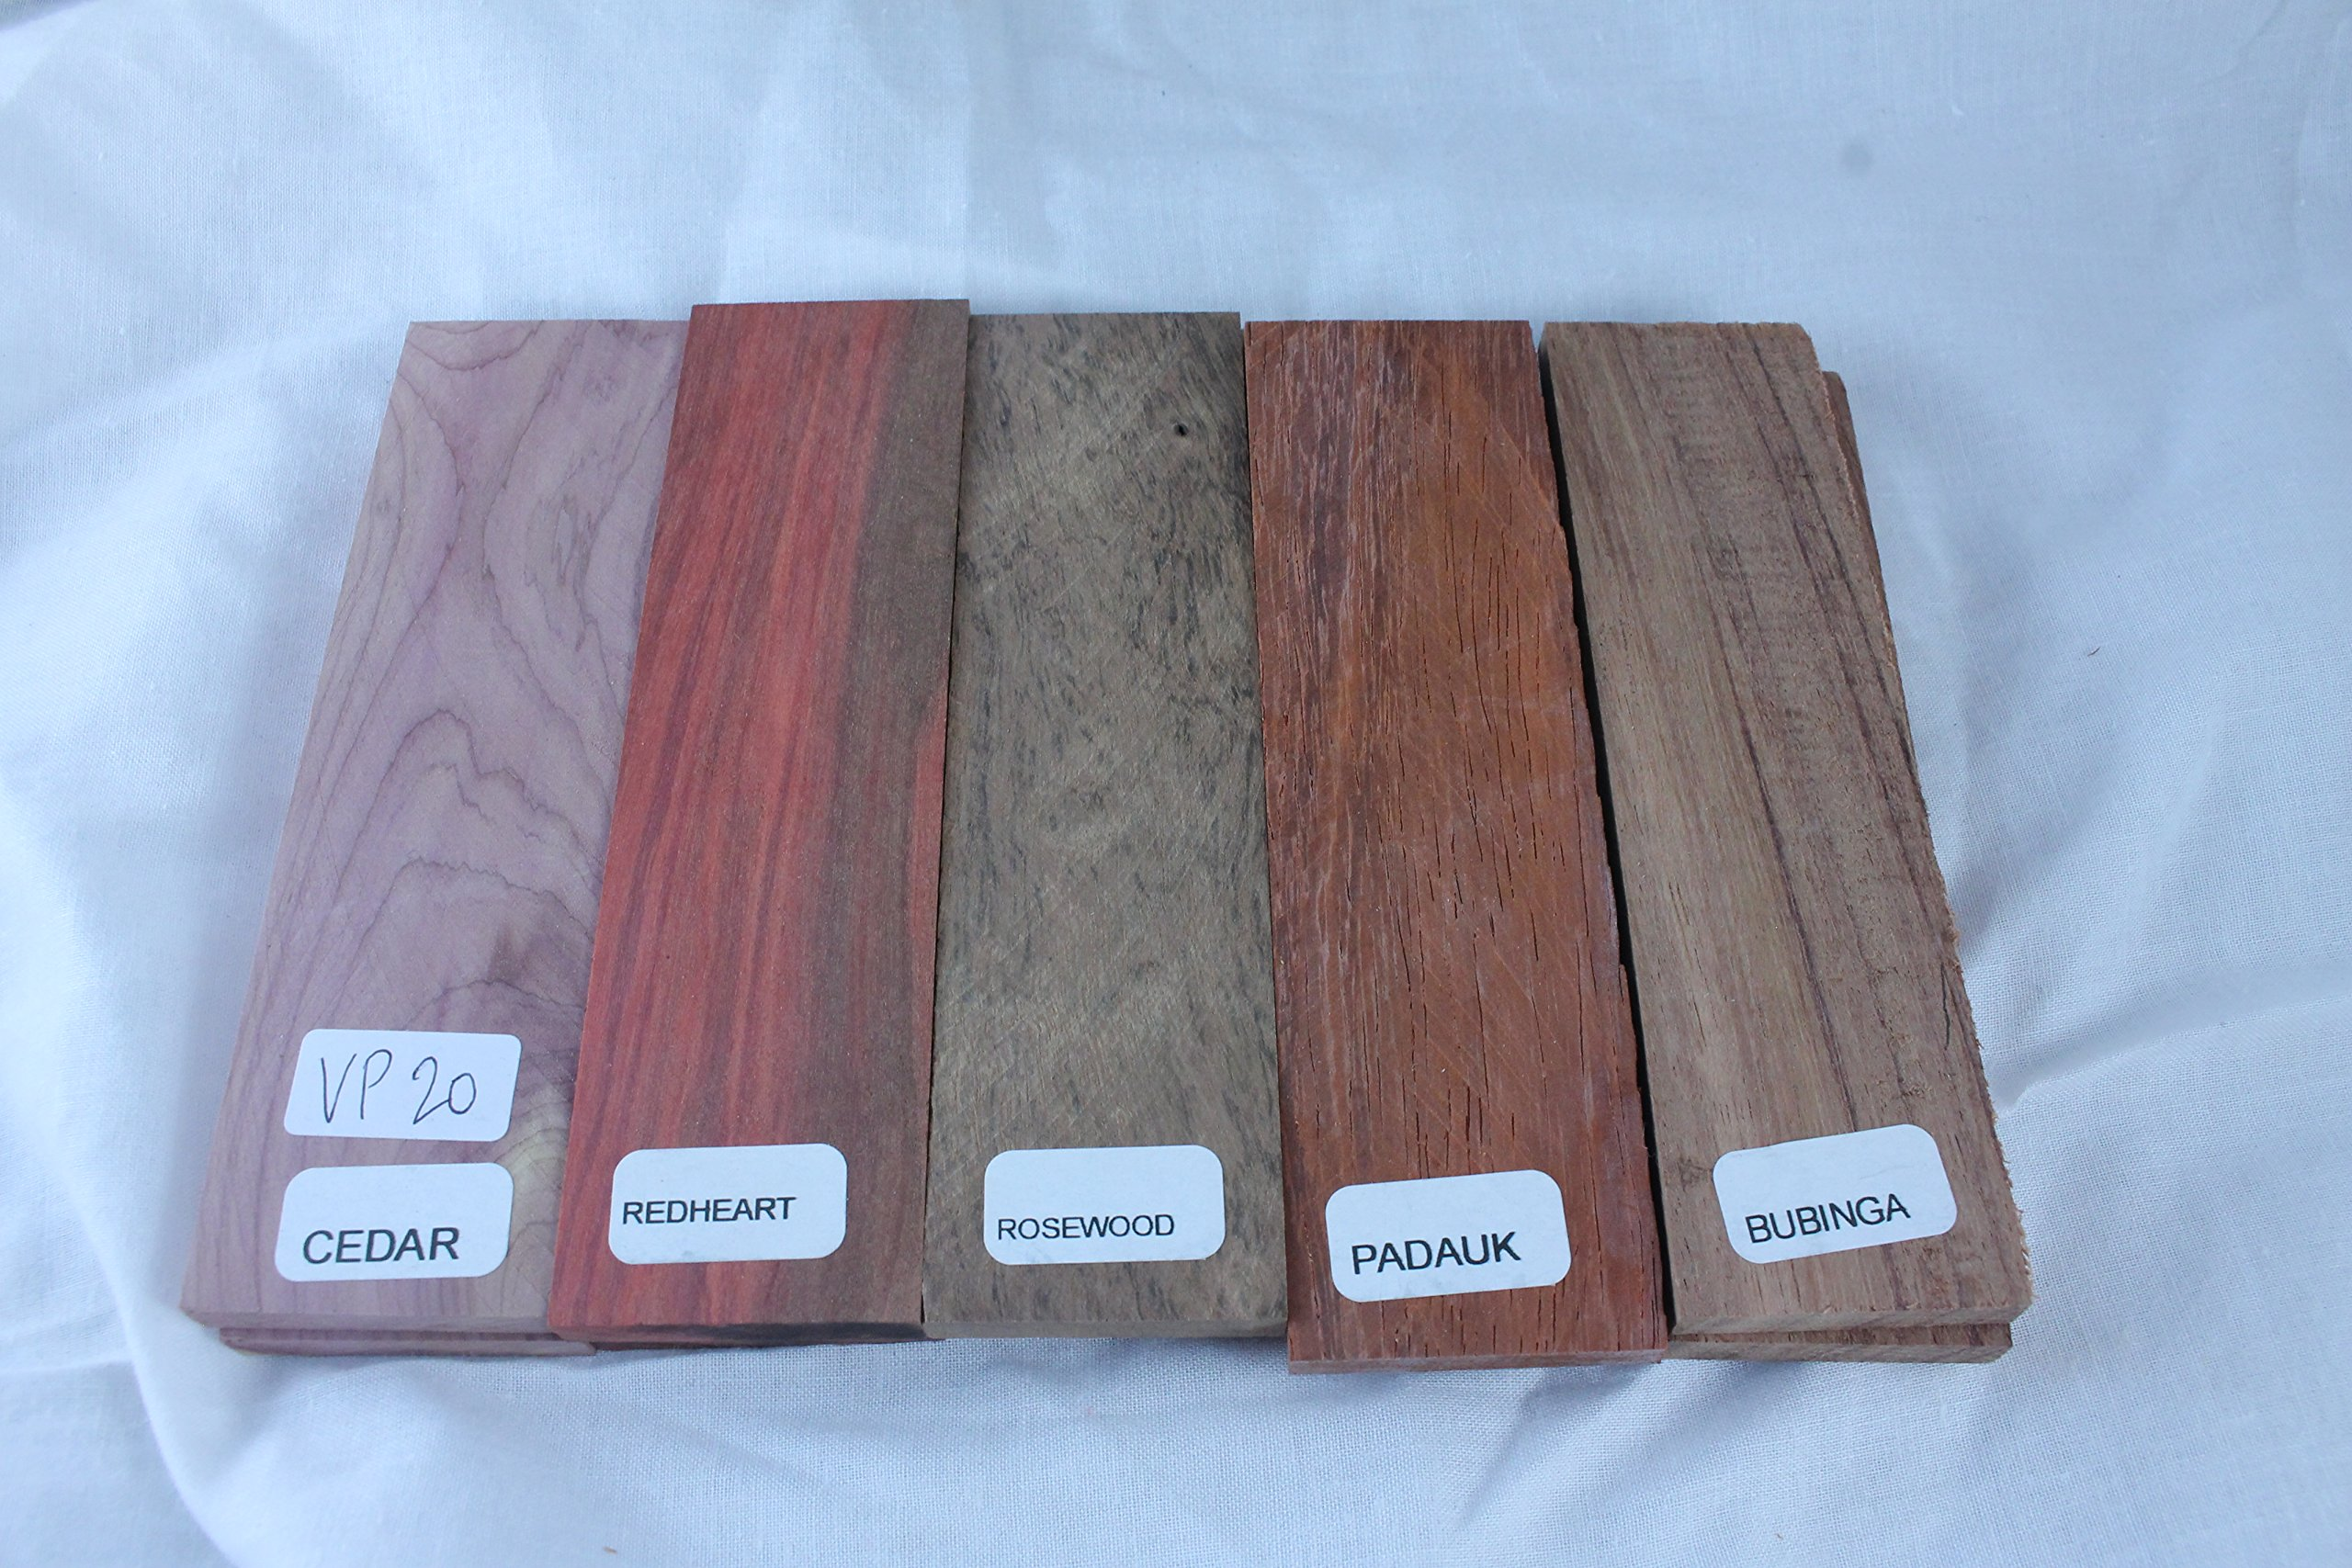 Payne Bros Custom Knives Variety Pack of 5 Wood Scales, 5 INCH, for Knife Making - Gun grps - Craft Supplies (VP20)